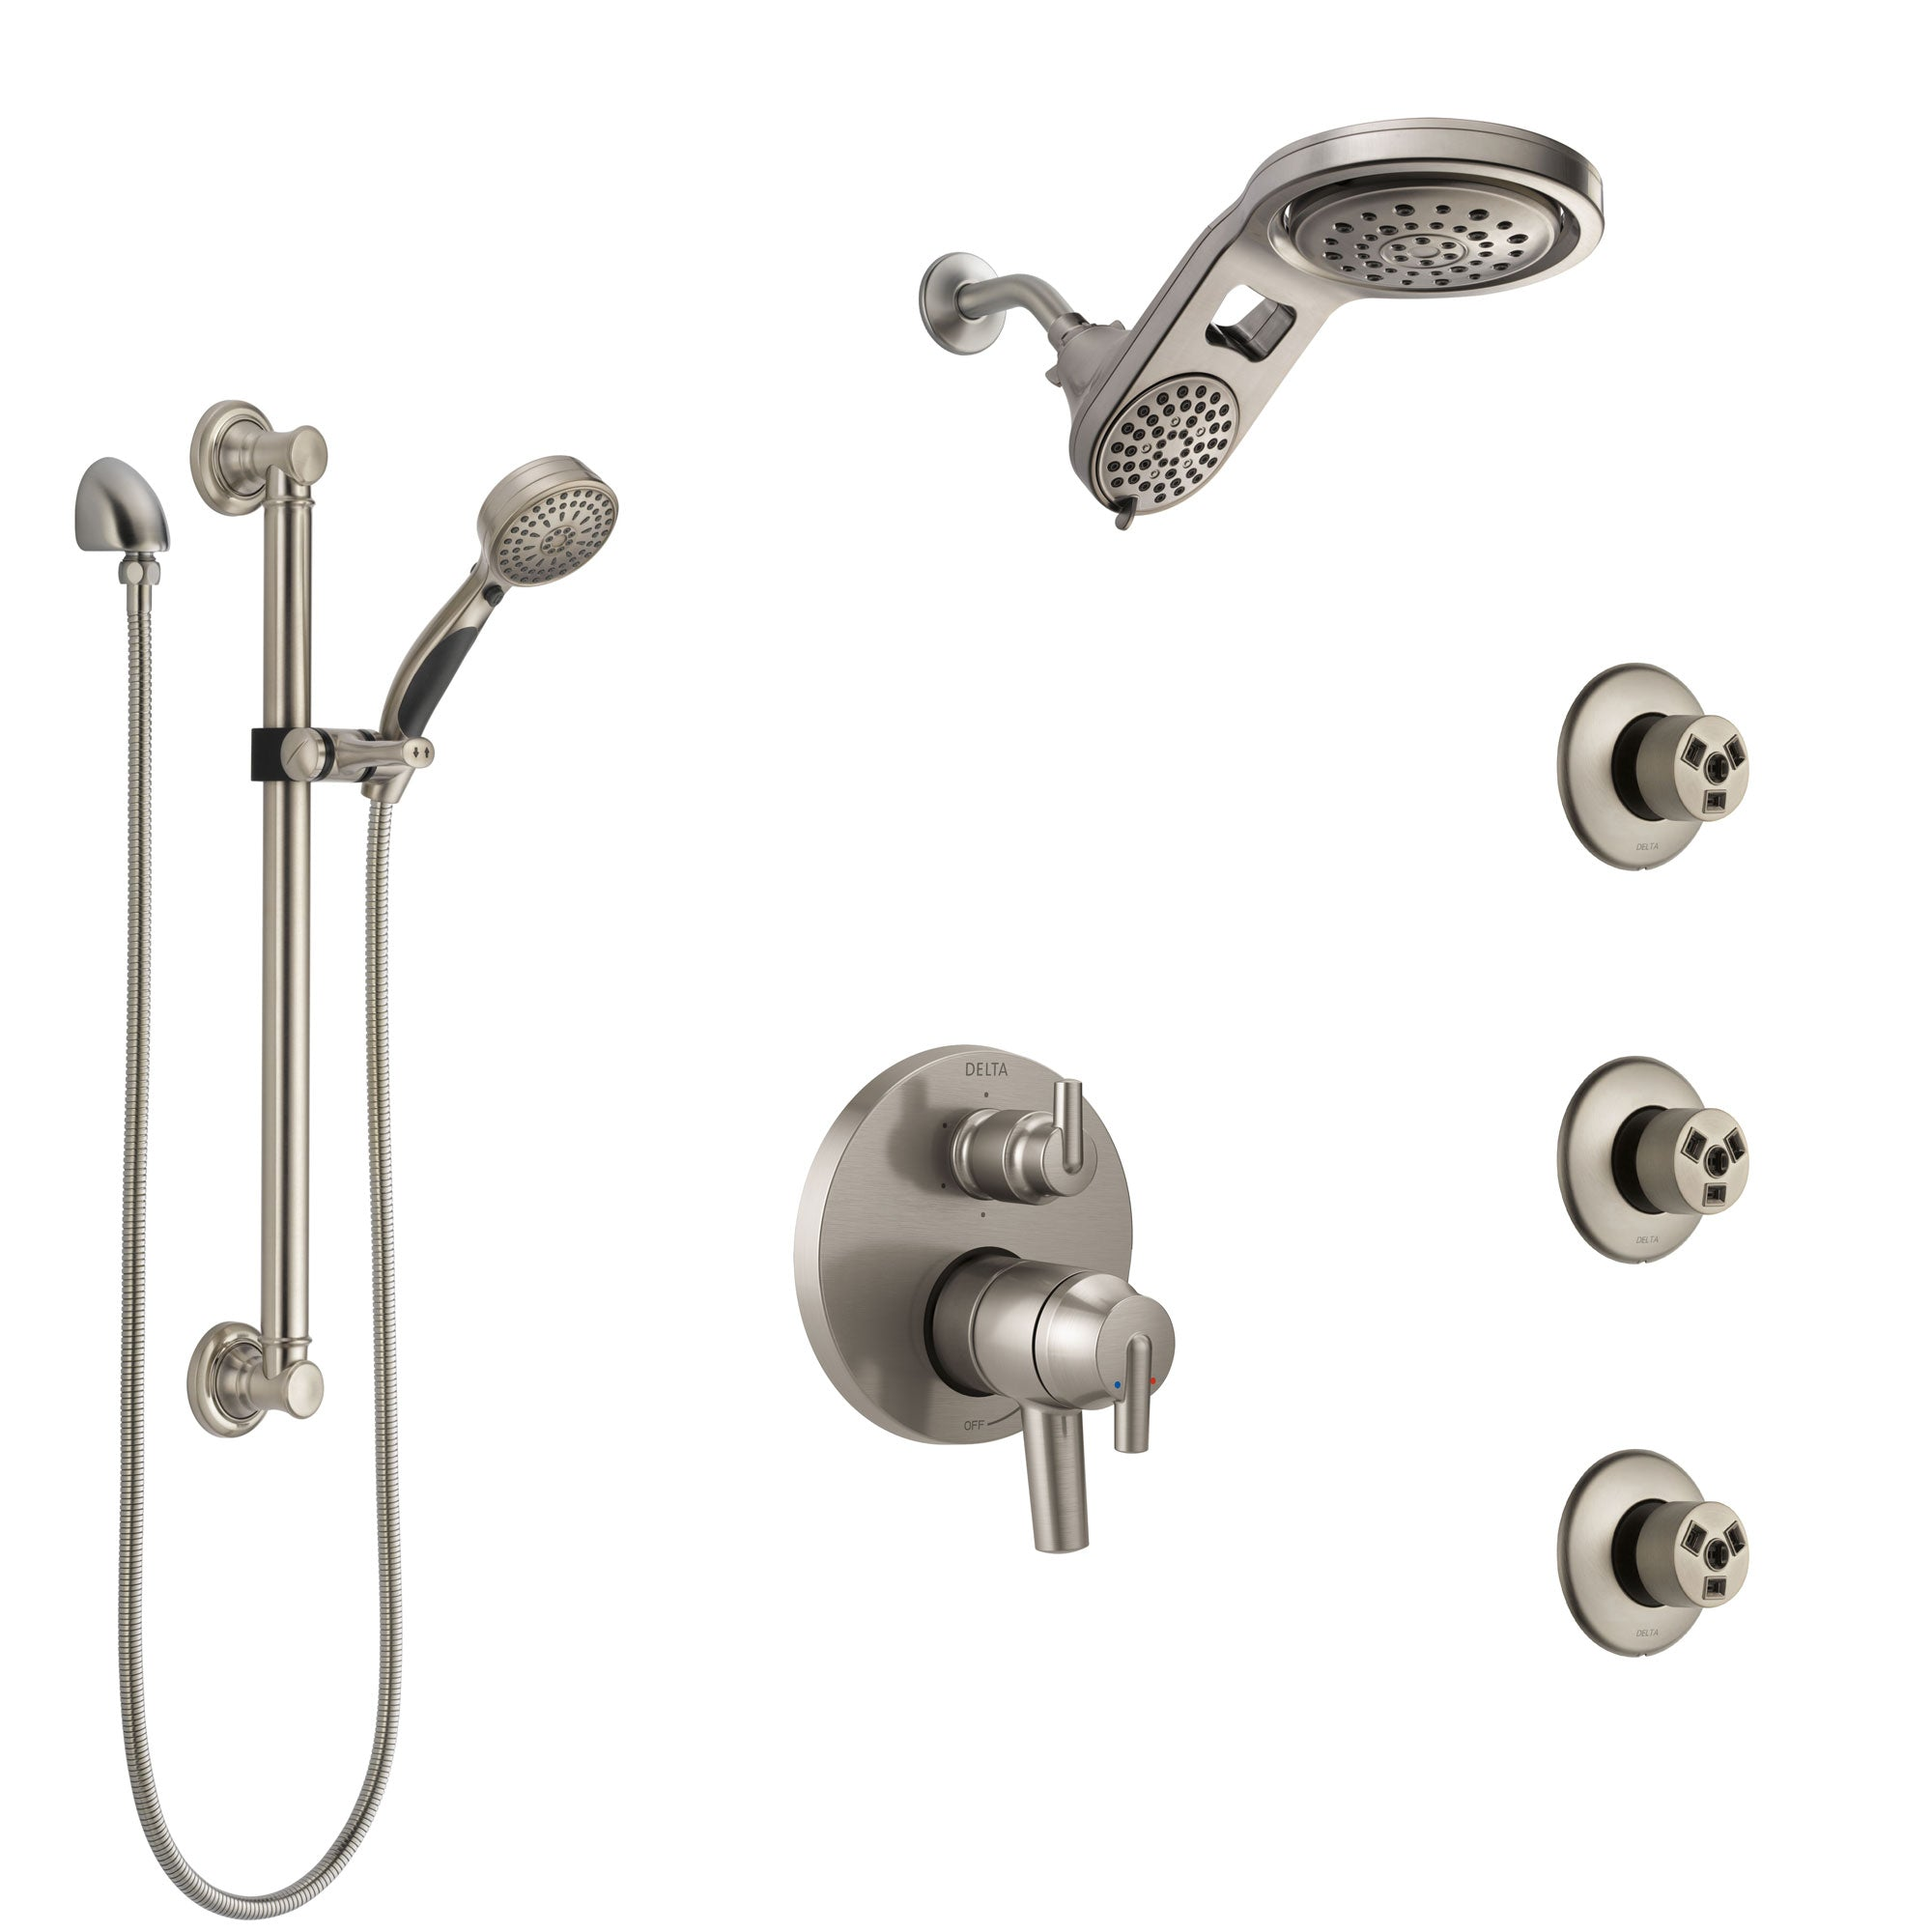 Delta Trinsic Dual Control Handle Stainless Steel Finish Shower System, Dual Showerhead, 3 Body Jets, Grab Bar Hand Spray SS27959SS10